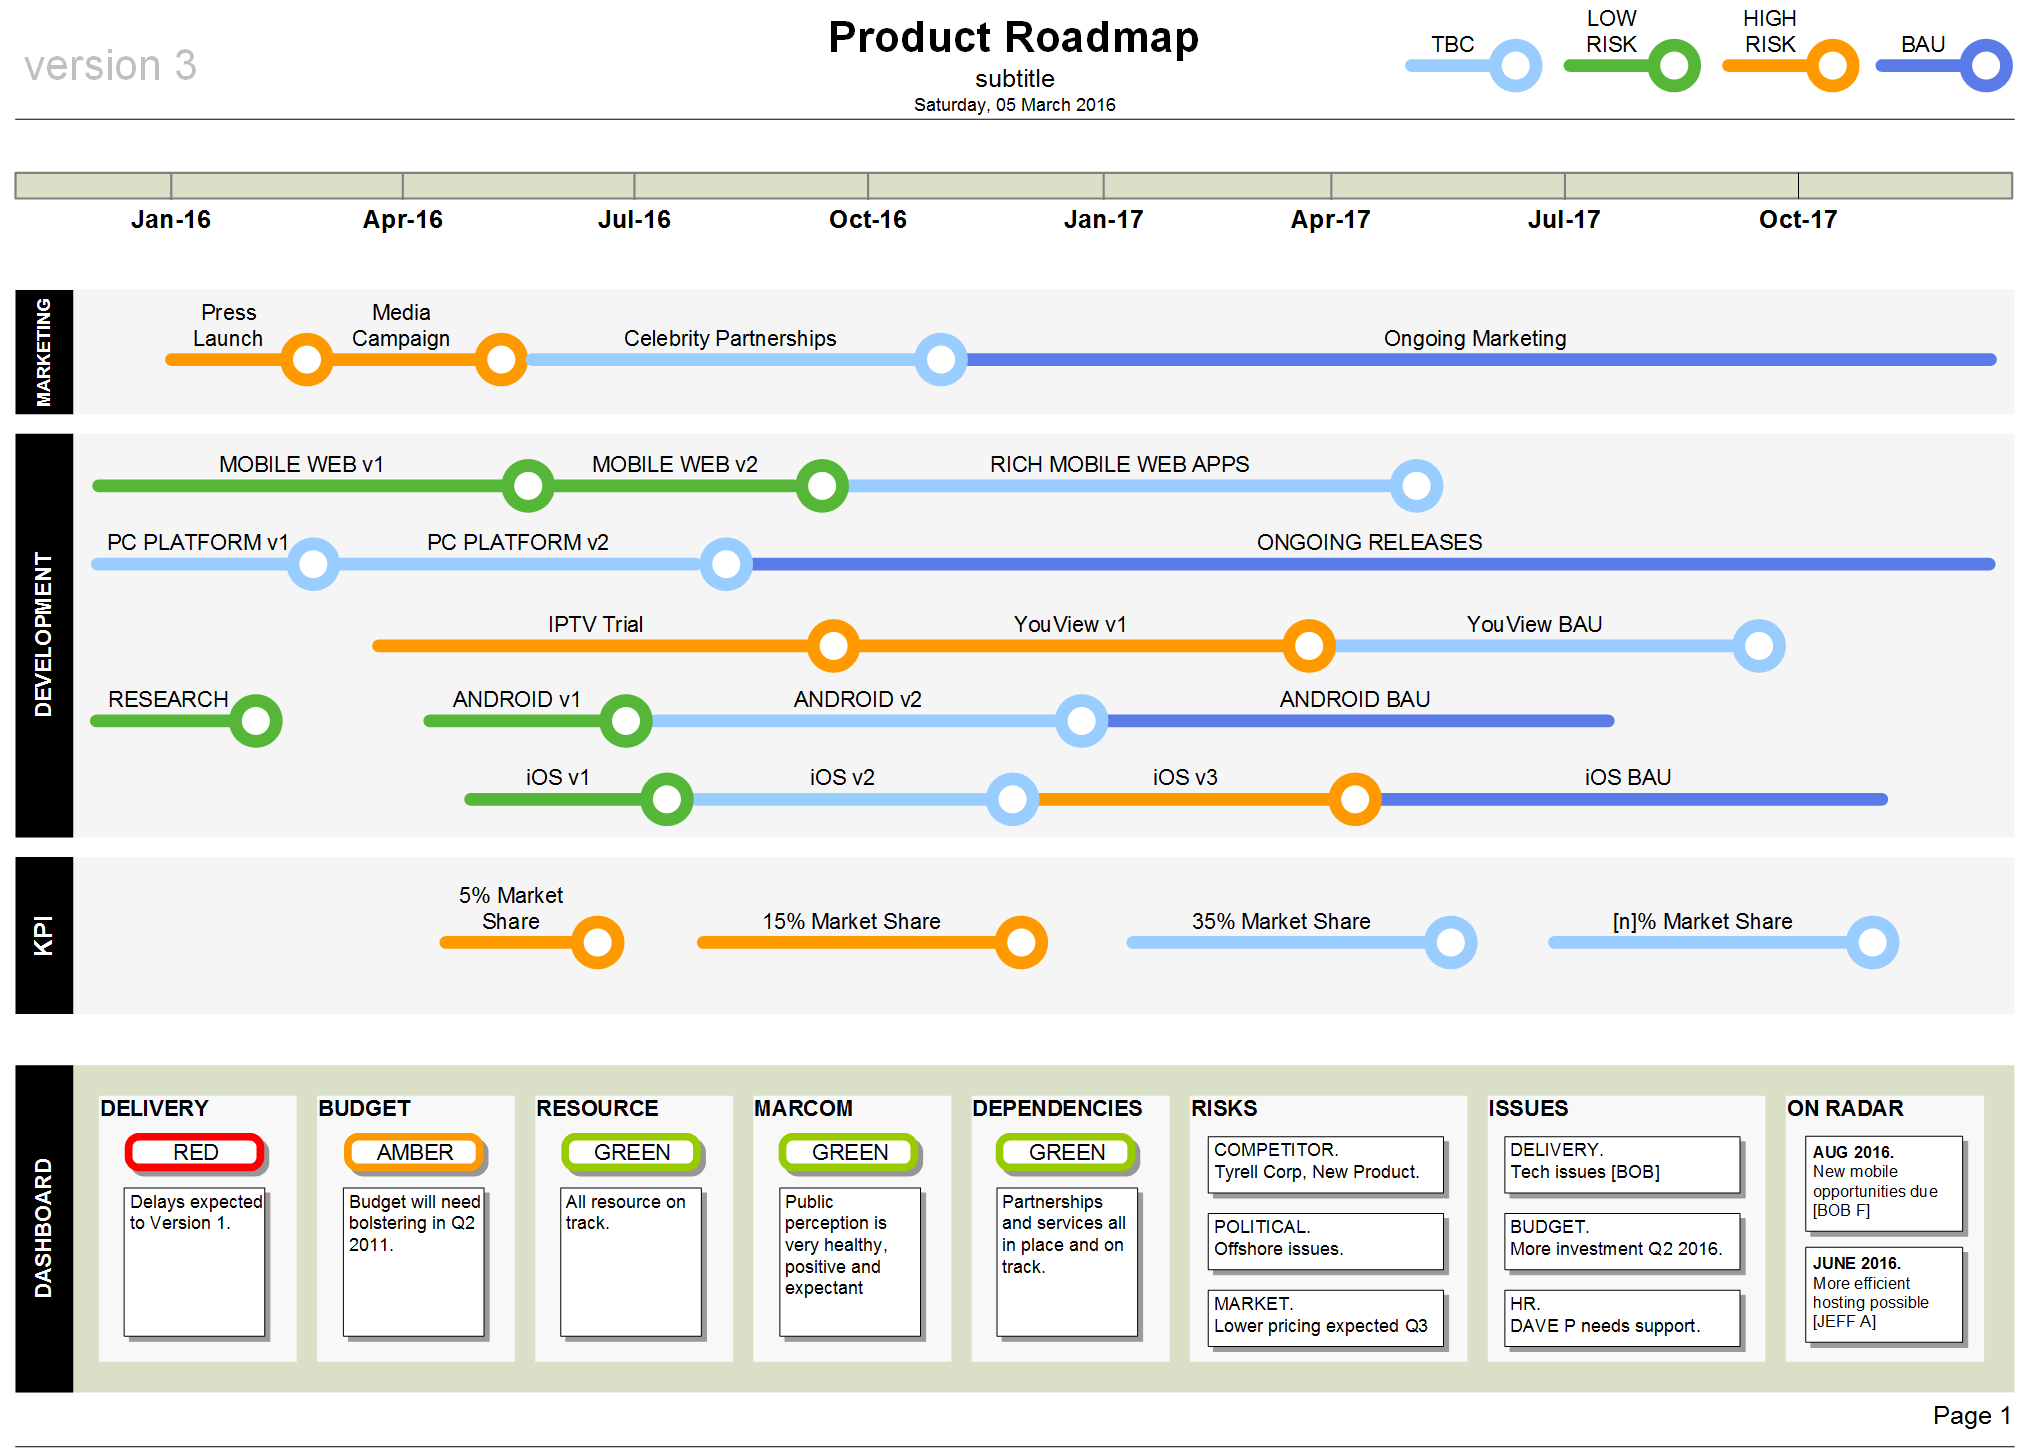 Product Roadmap Template (Visio) | Project Management | Pinterest